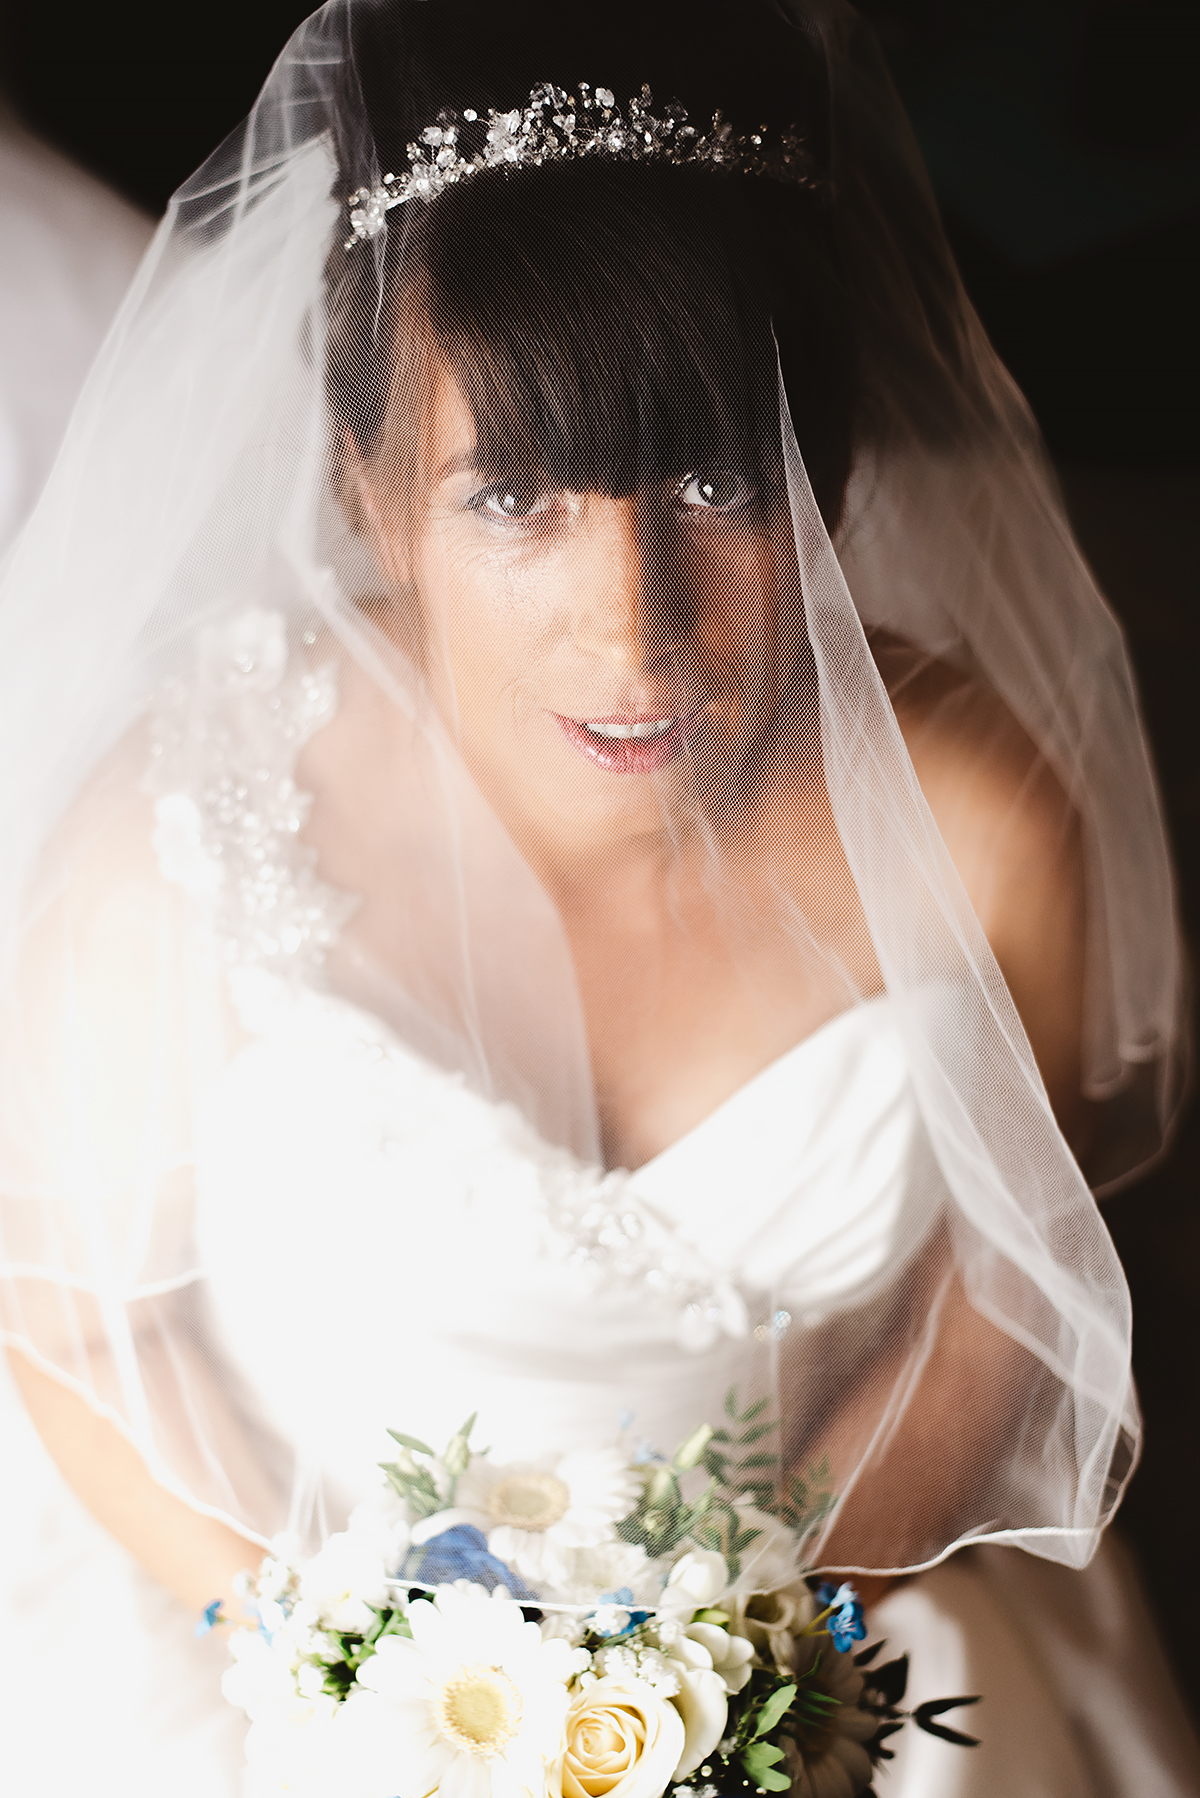 wedding Ireland wedding photographer tipperary cork dublin limerick waterford galway photography best story documentary portrait art 12.jpg